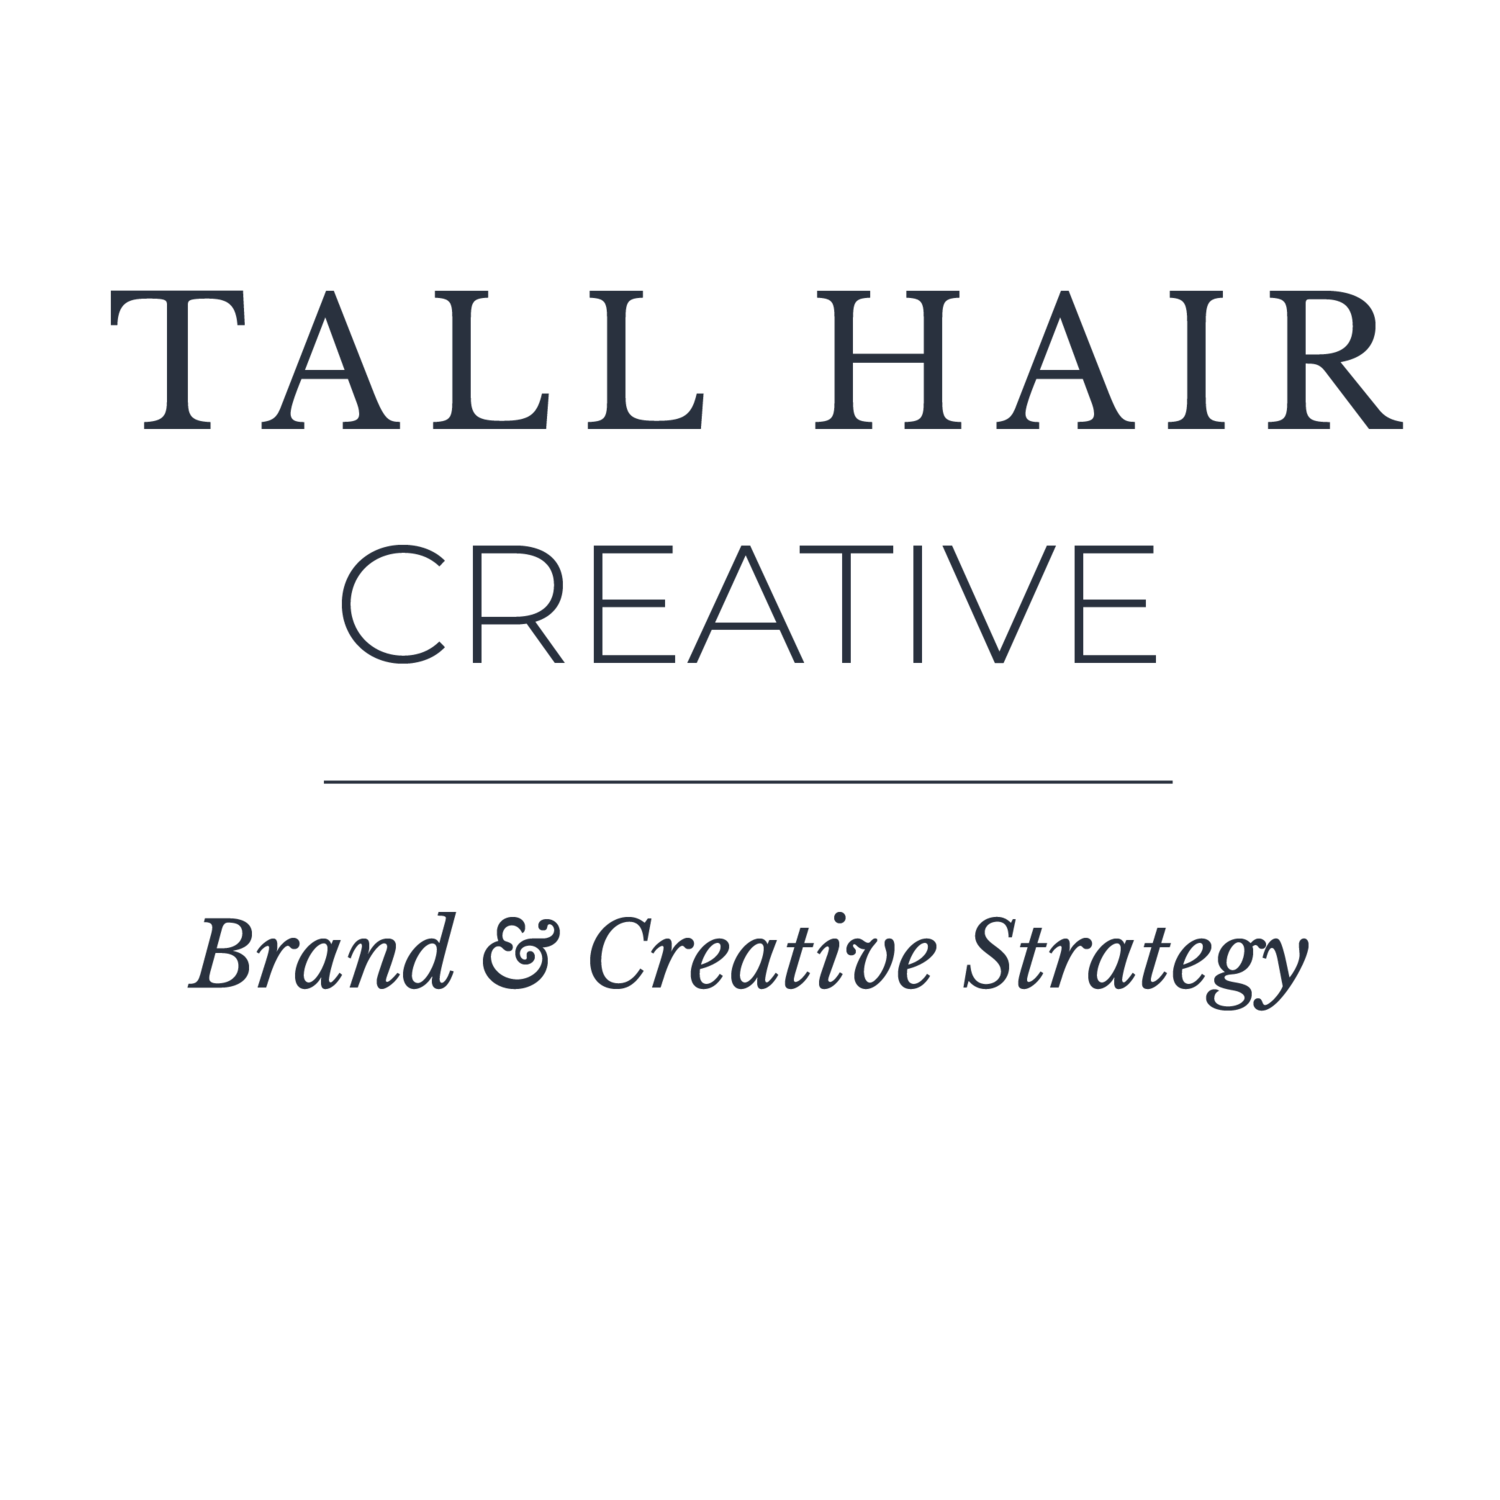 TALL HAIR CREATIVE Branding for the Creative & Courageous